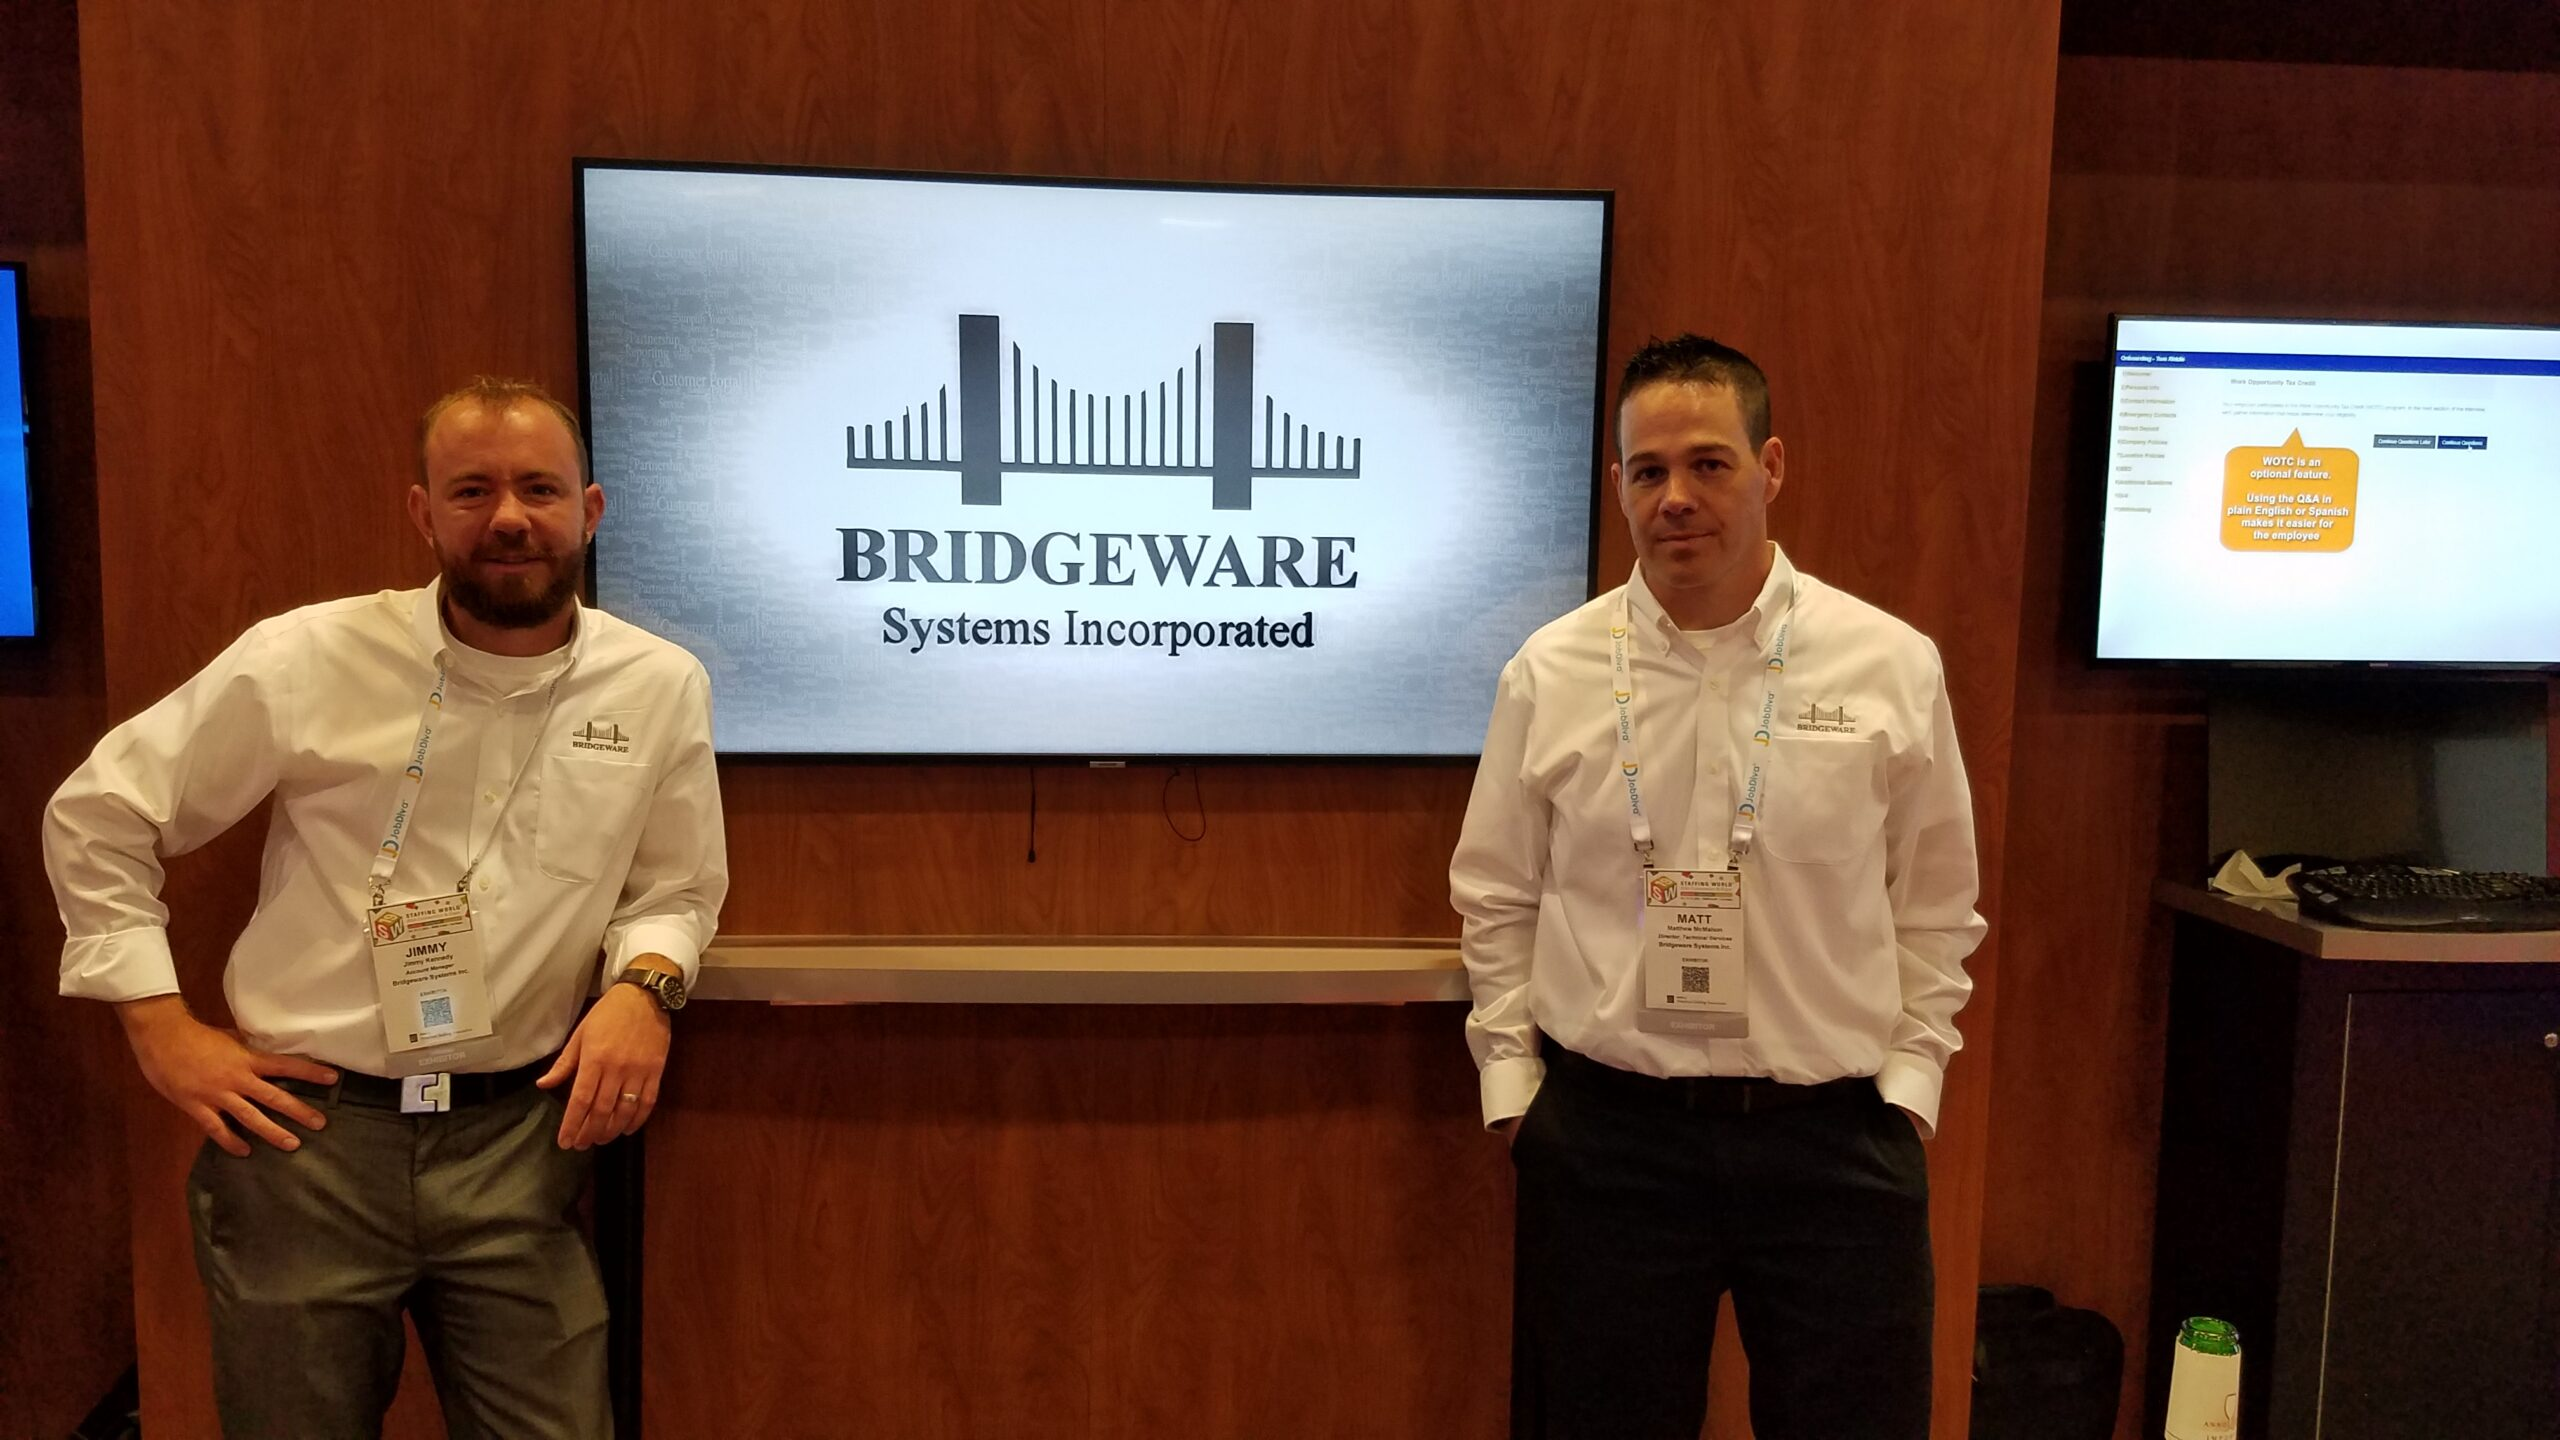 bridgeware's staffing convention Booth